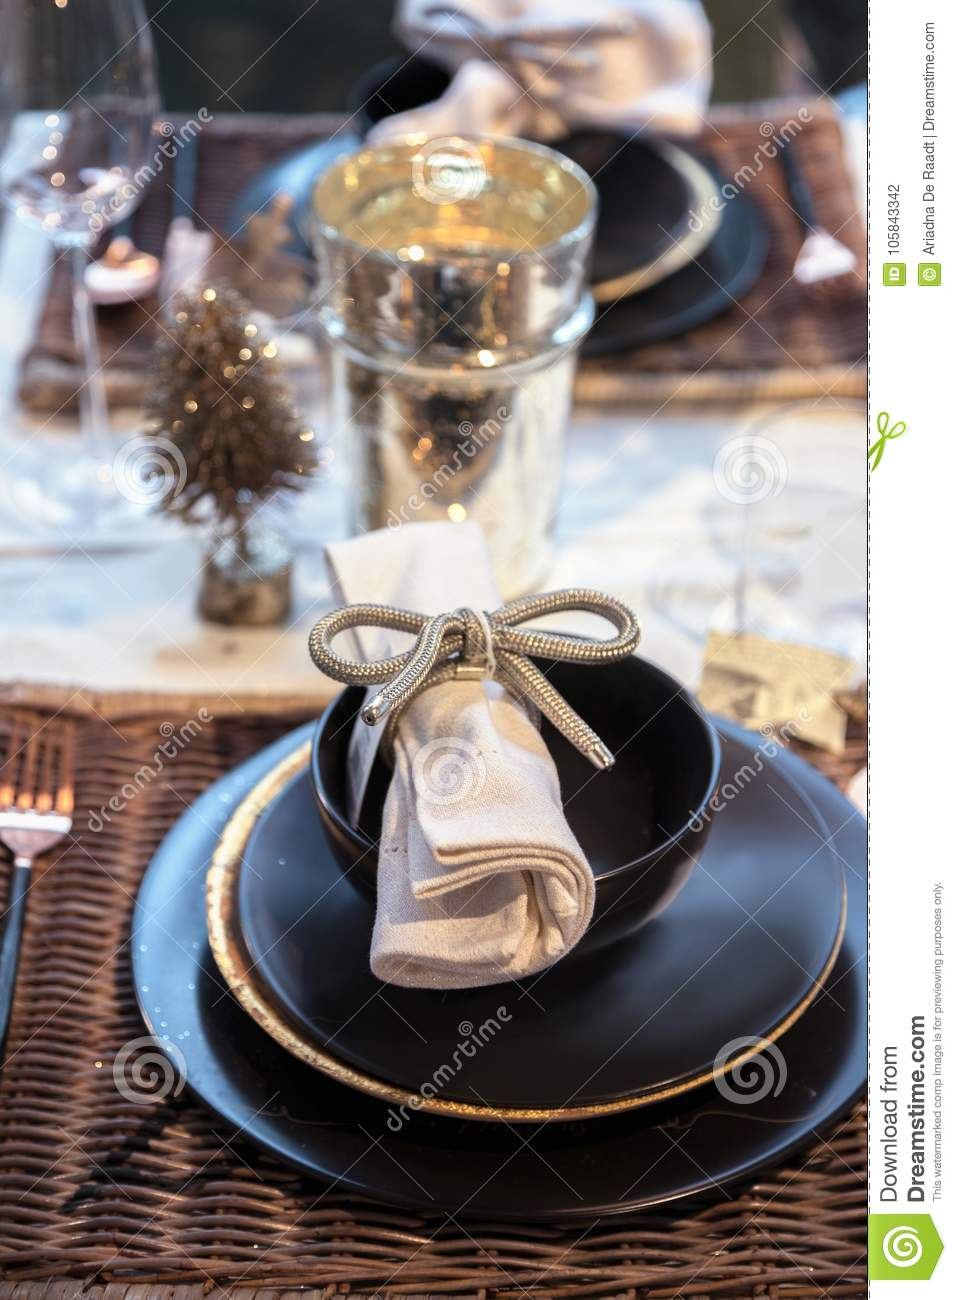 Terrific Holiday Table Decorations Stock Photo Image Of Style Download Free Architecture Designs Scobabritishbridgeorg